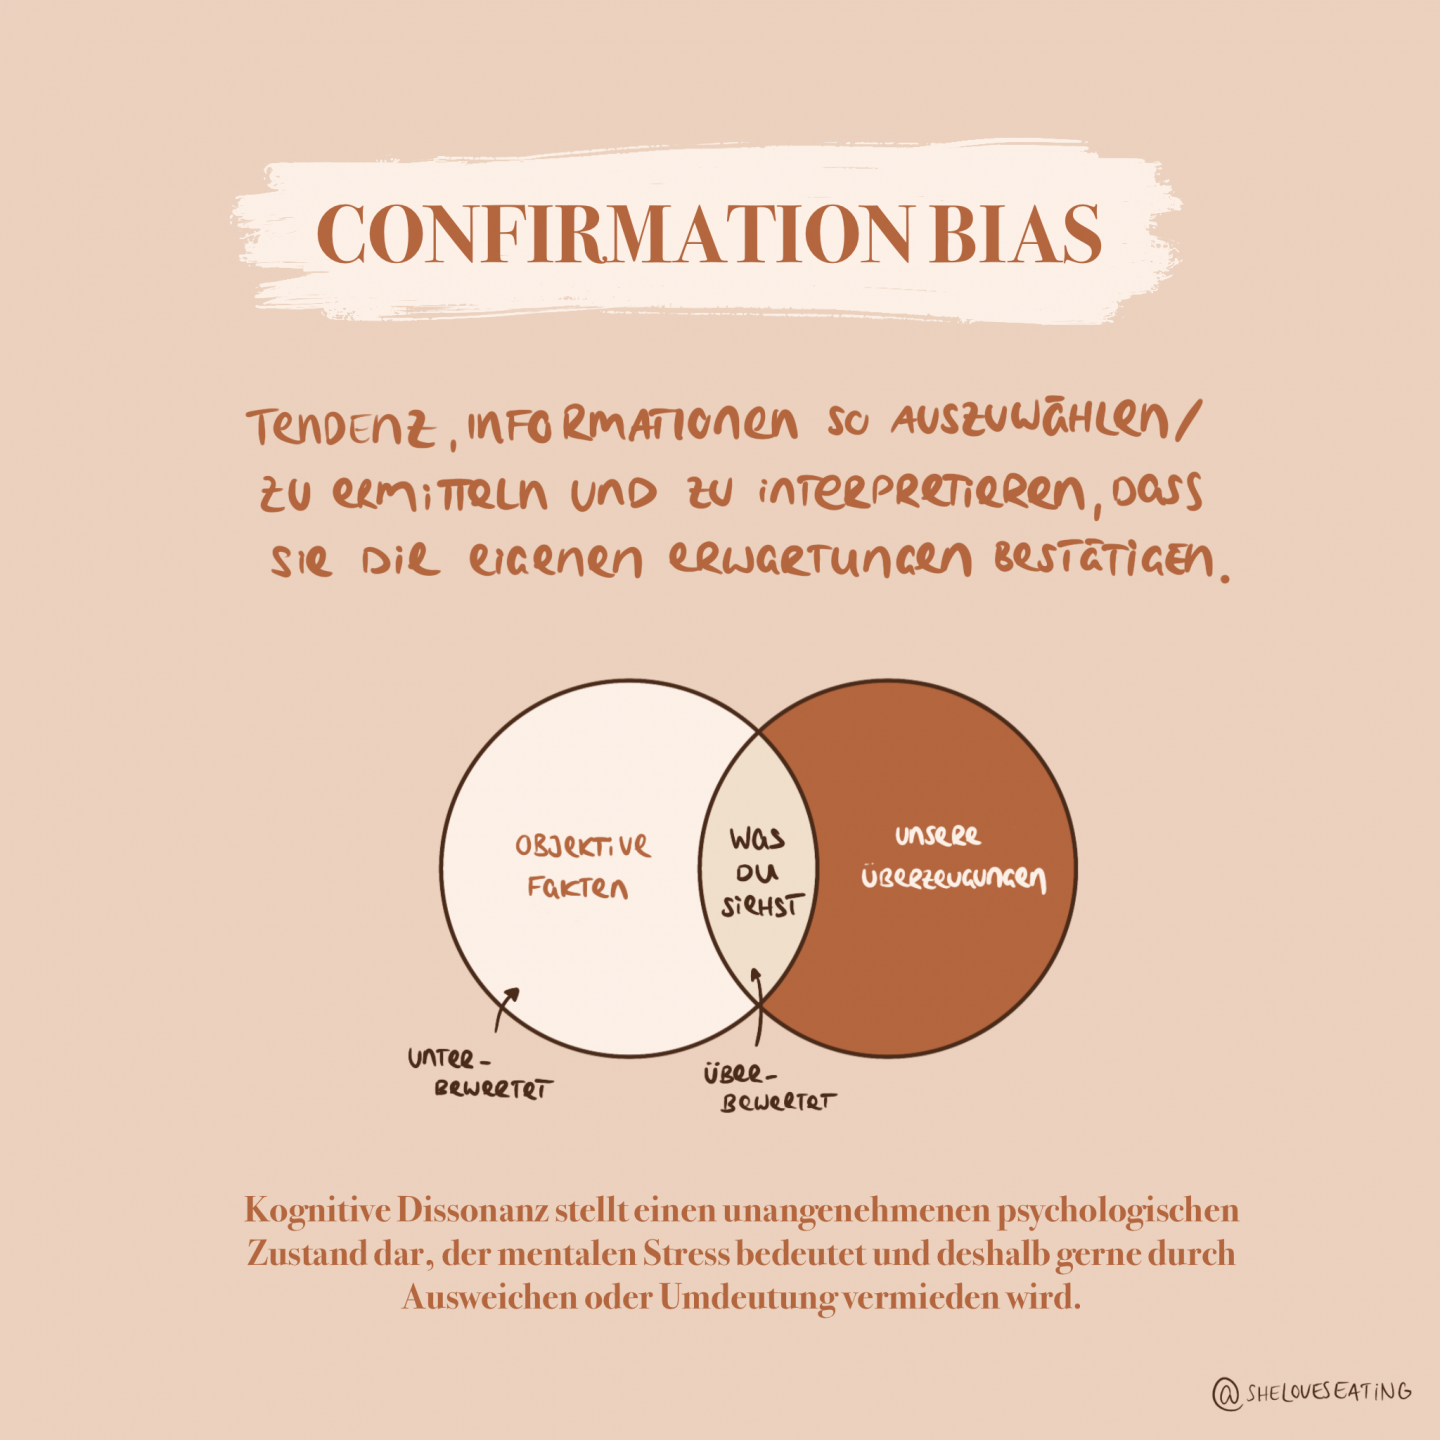 Was ist ein Confirmation Bias?